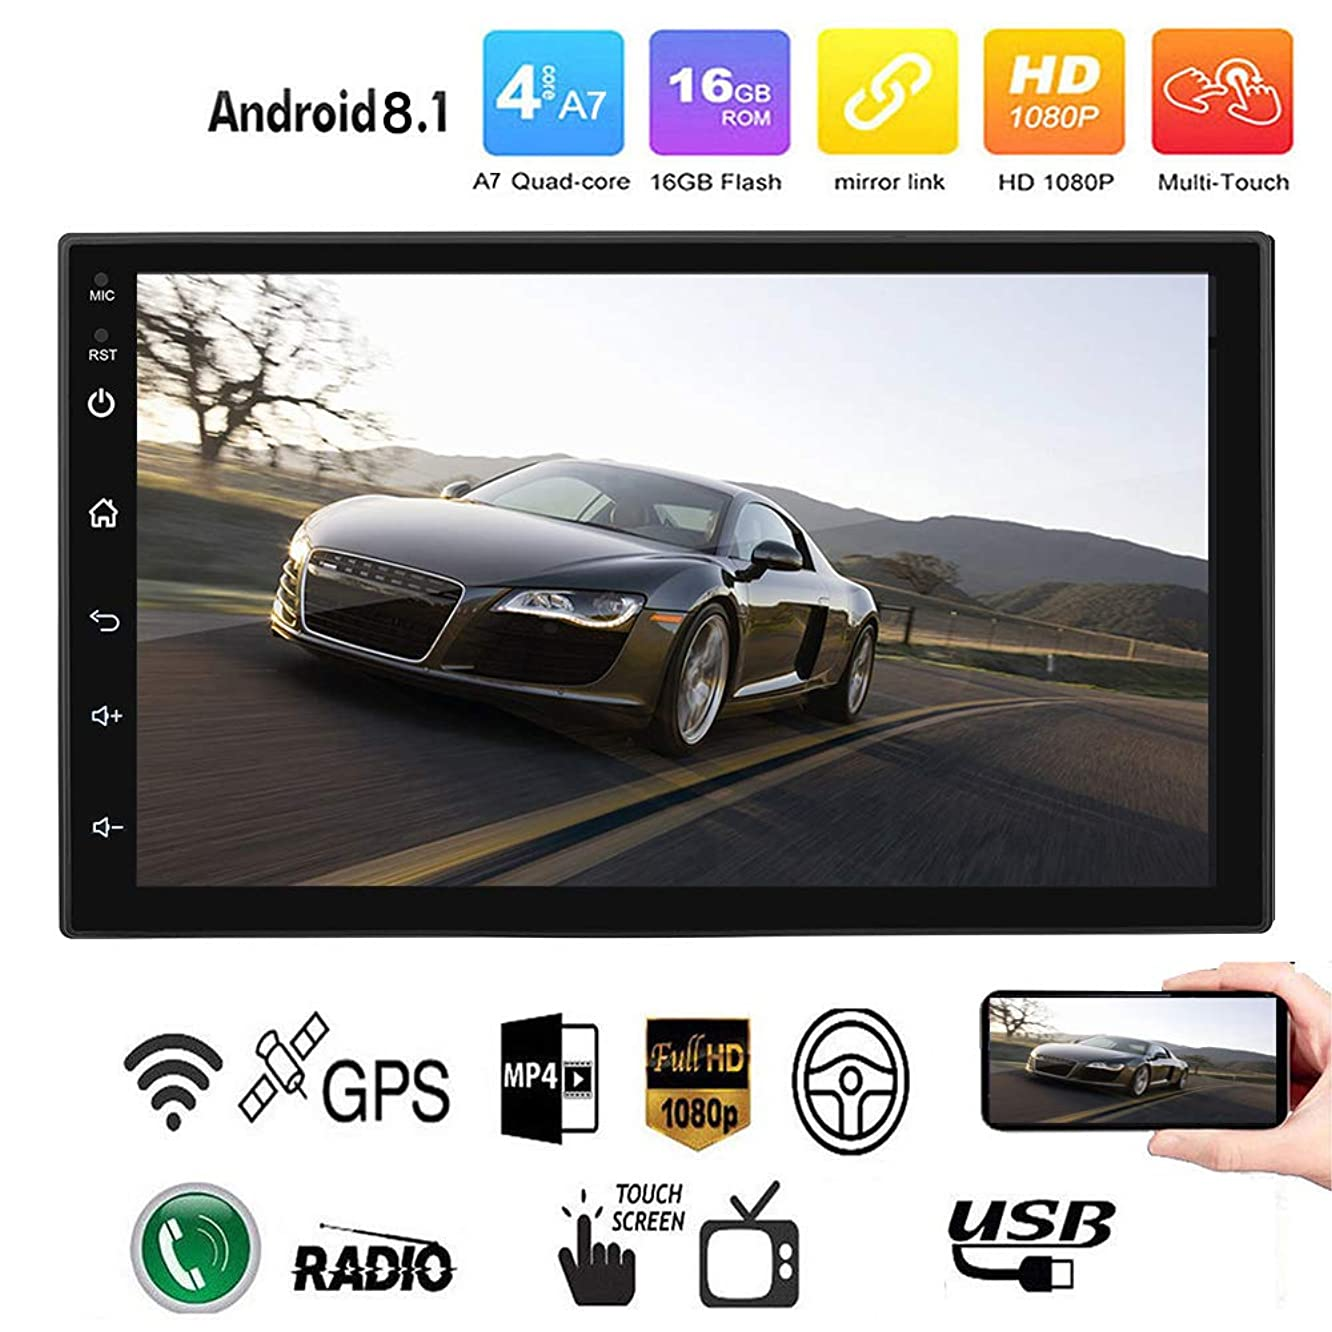 Binize Android 8.1 GPS Navigation for Car Stereo Radio Quad Touch Screen 7 inch in Dash Auto Video Double 2Din Multimedia no DVD Player Mp3 Mp5 with Bluetooth WiFi DAB OBD SWC Car GPS Navigation